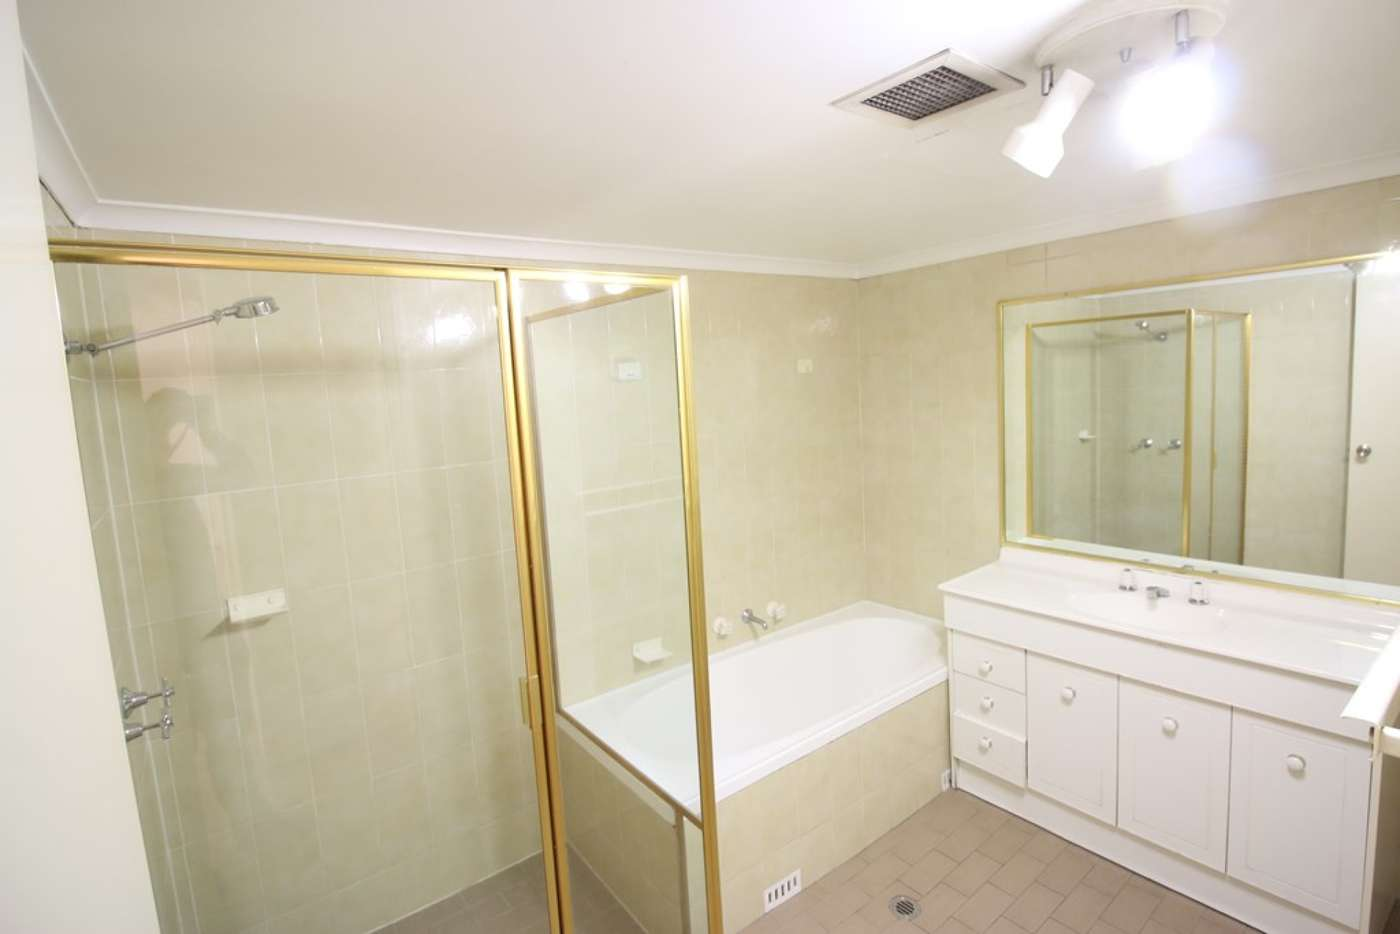 Sixth view of Homely apartment listing, 533 Kent Street, Sydney NSW 2000